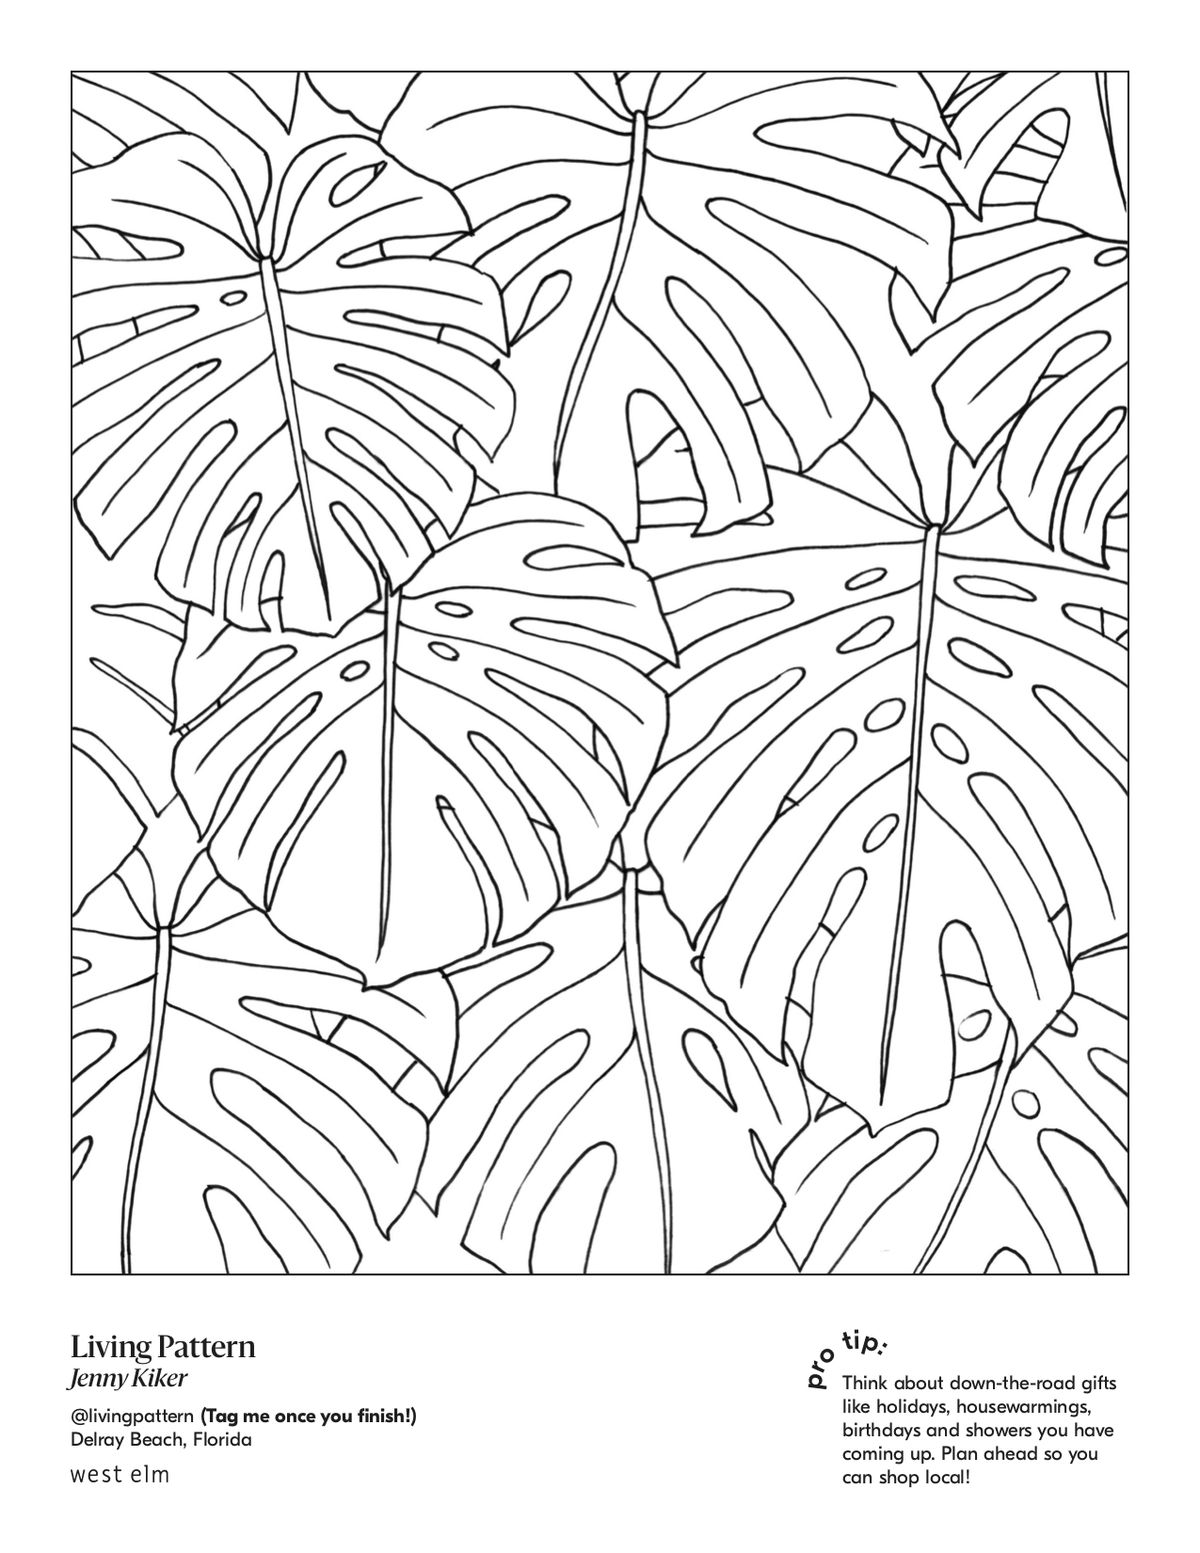 Line drawing of a bunch of plant leaves.